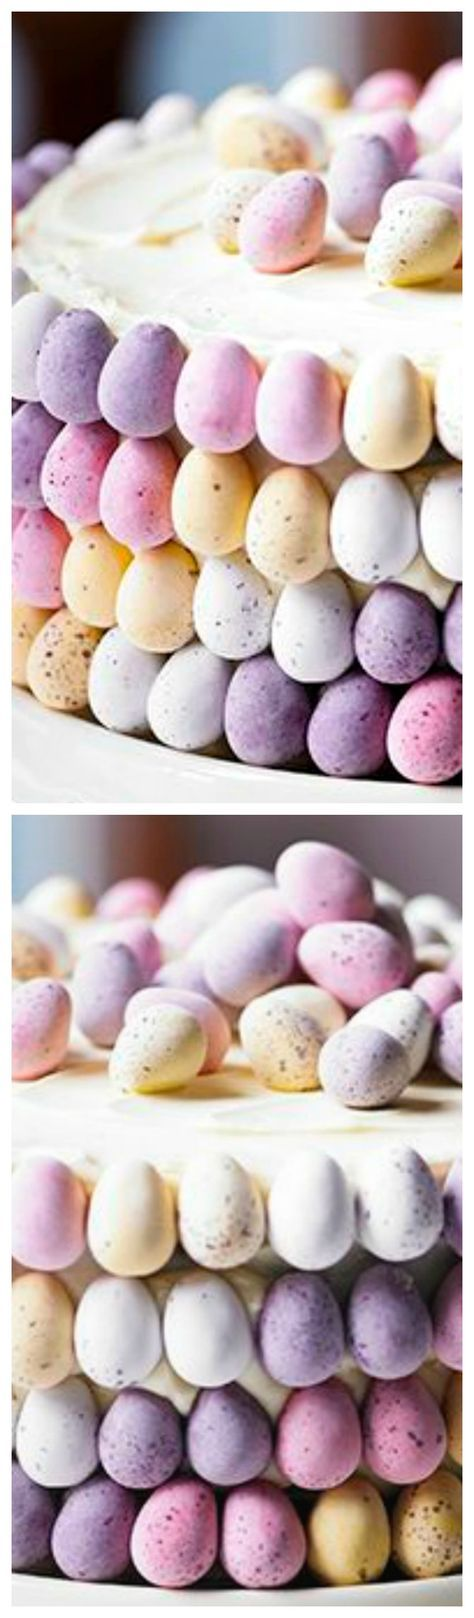 Martha's Mini Egg Cake Recipe ~ Watch Martha Collison from The Great British Bake Off make this beautiful mini egg cake with white chocolate buttercream... Video recipe included